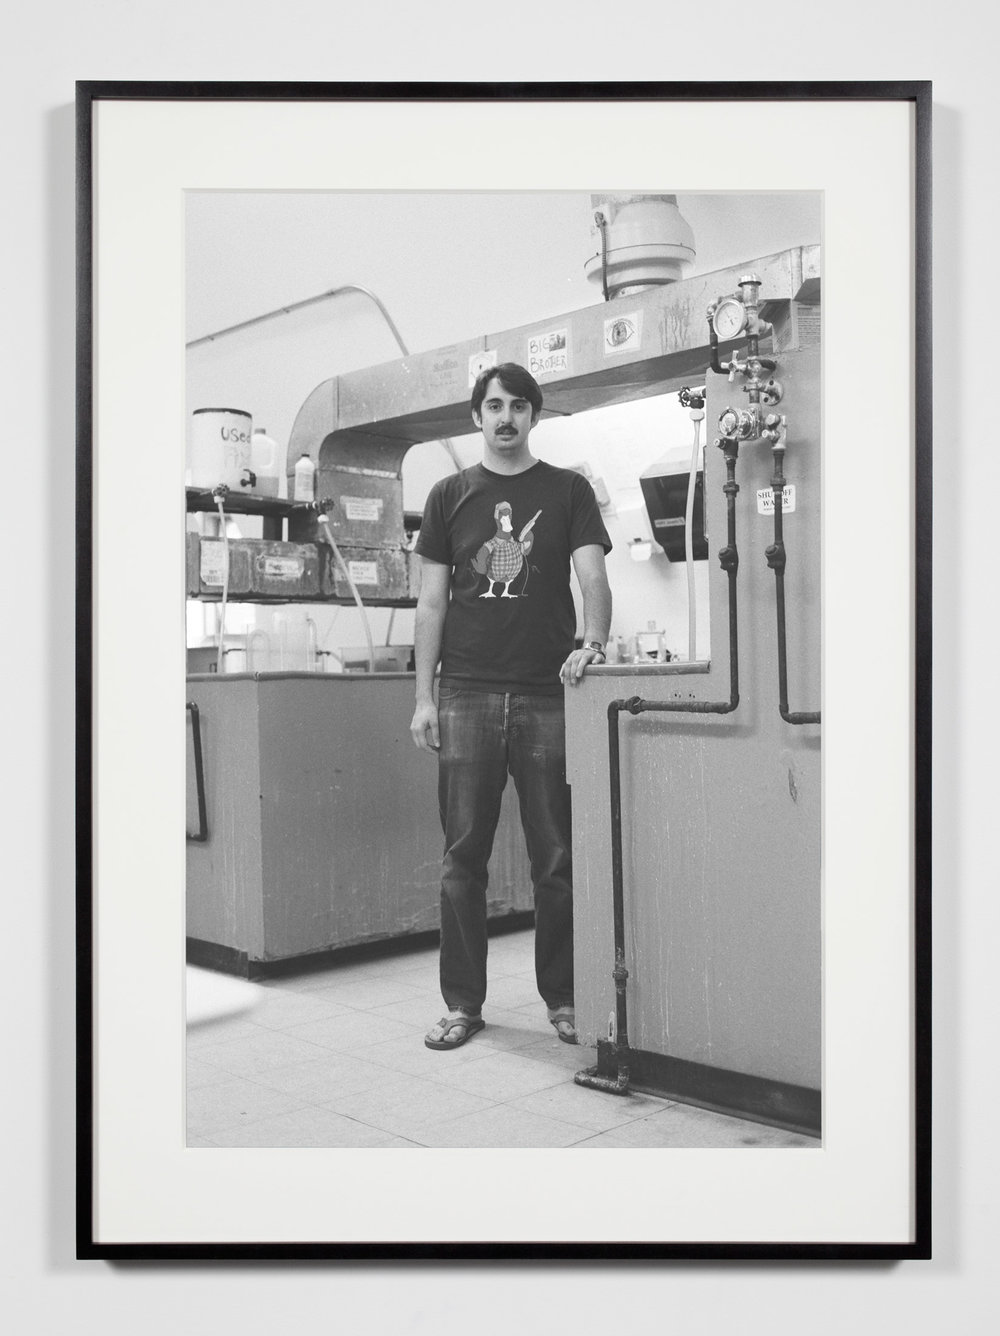 College Darkroom Technician, Annandale-on-Hudson, New York, July 11, 2009   2011  Epson Ultrachrome K3 archival ink jet print on Hahnemühle Photo Rag paper  36 3/8 x 26 3/8 inches   Industrial Portraits, 2008–    A Diagram of Forces, 2011